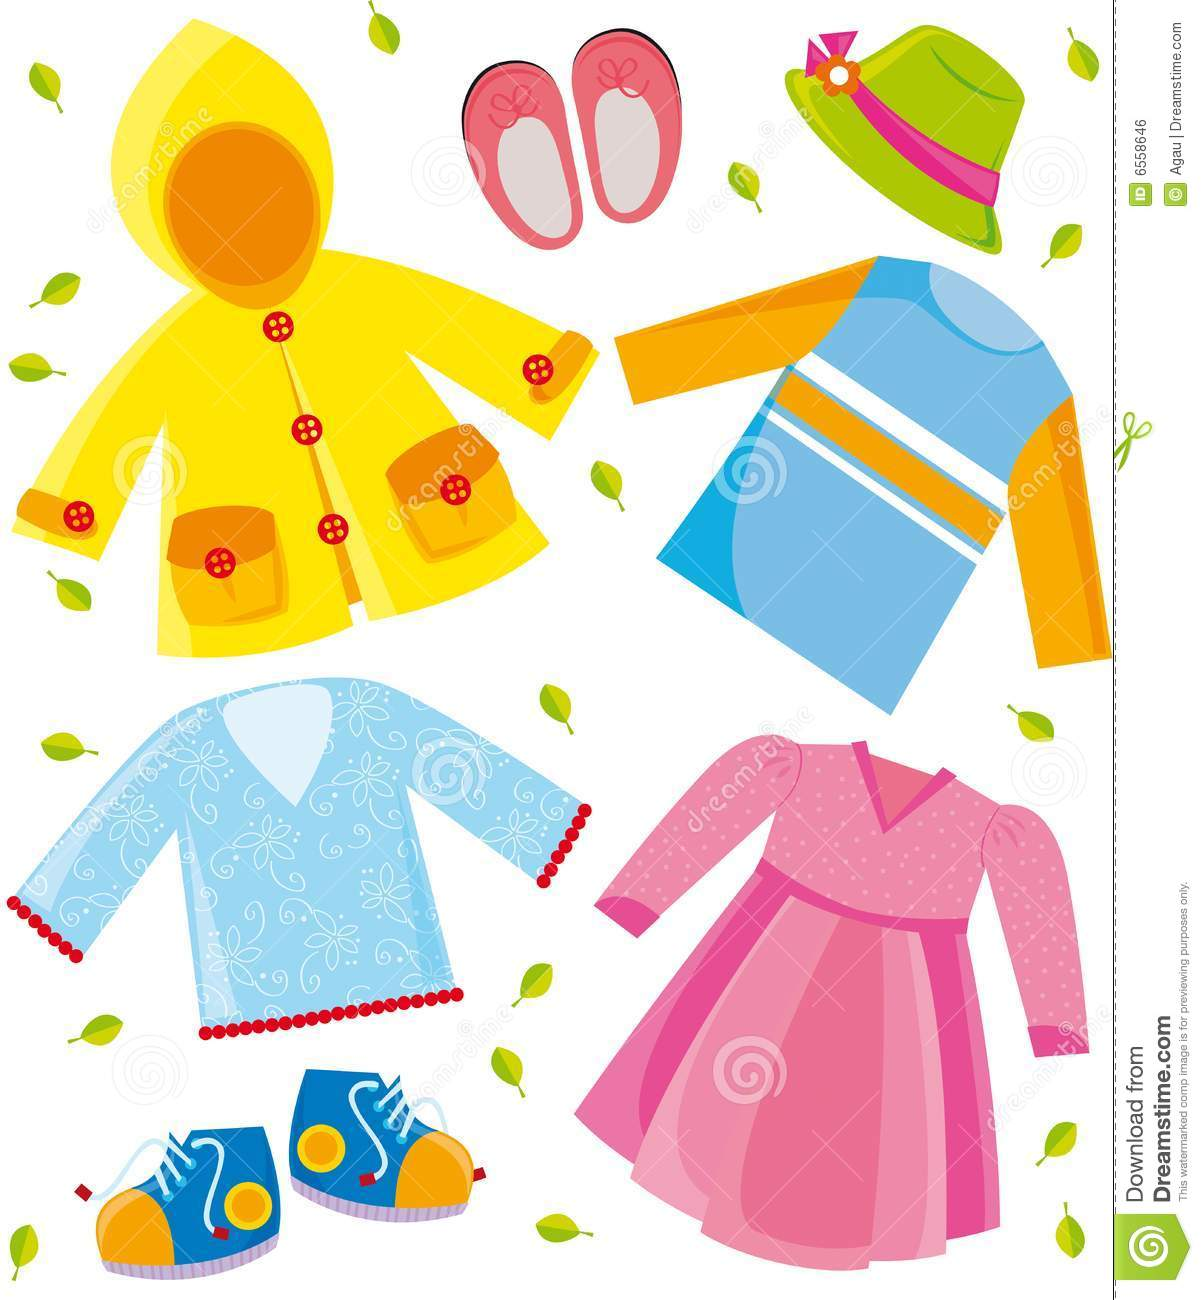 Spring Season Clothes Clipart.